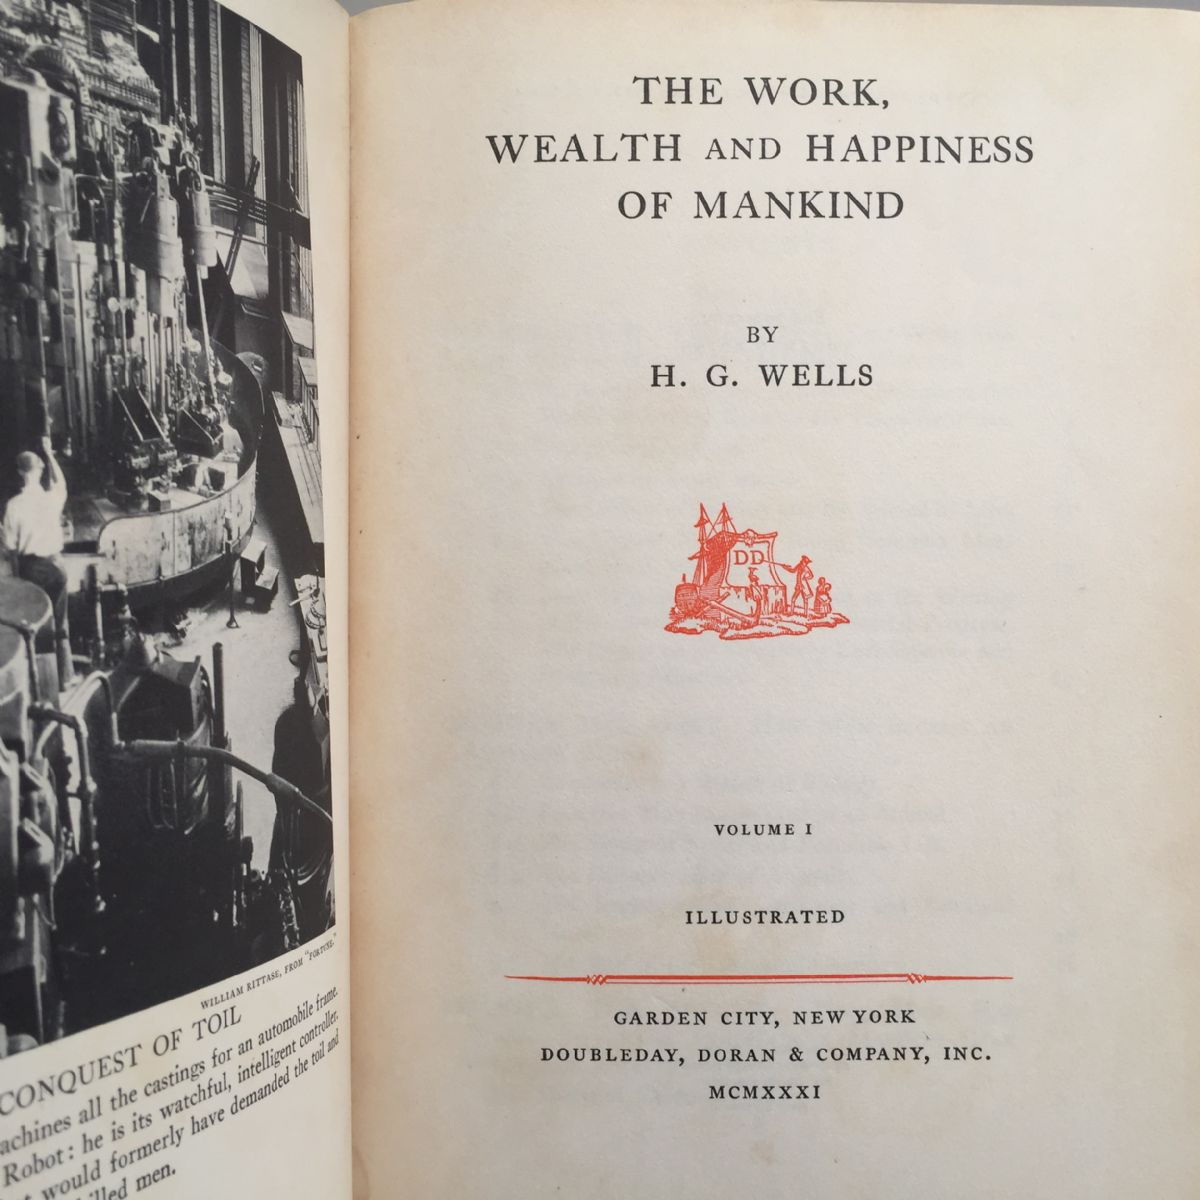 The Work, Wealth and Happiness of Mankind